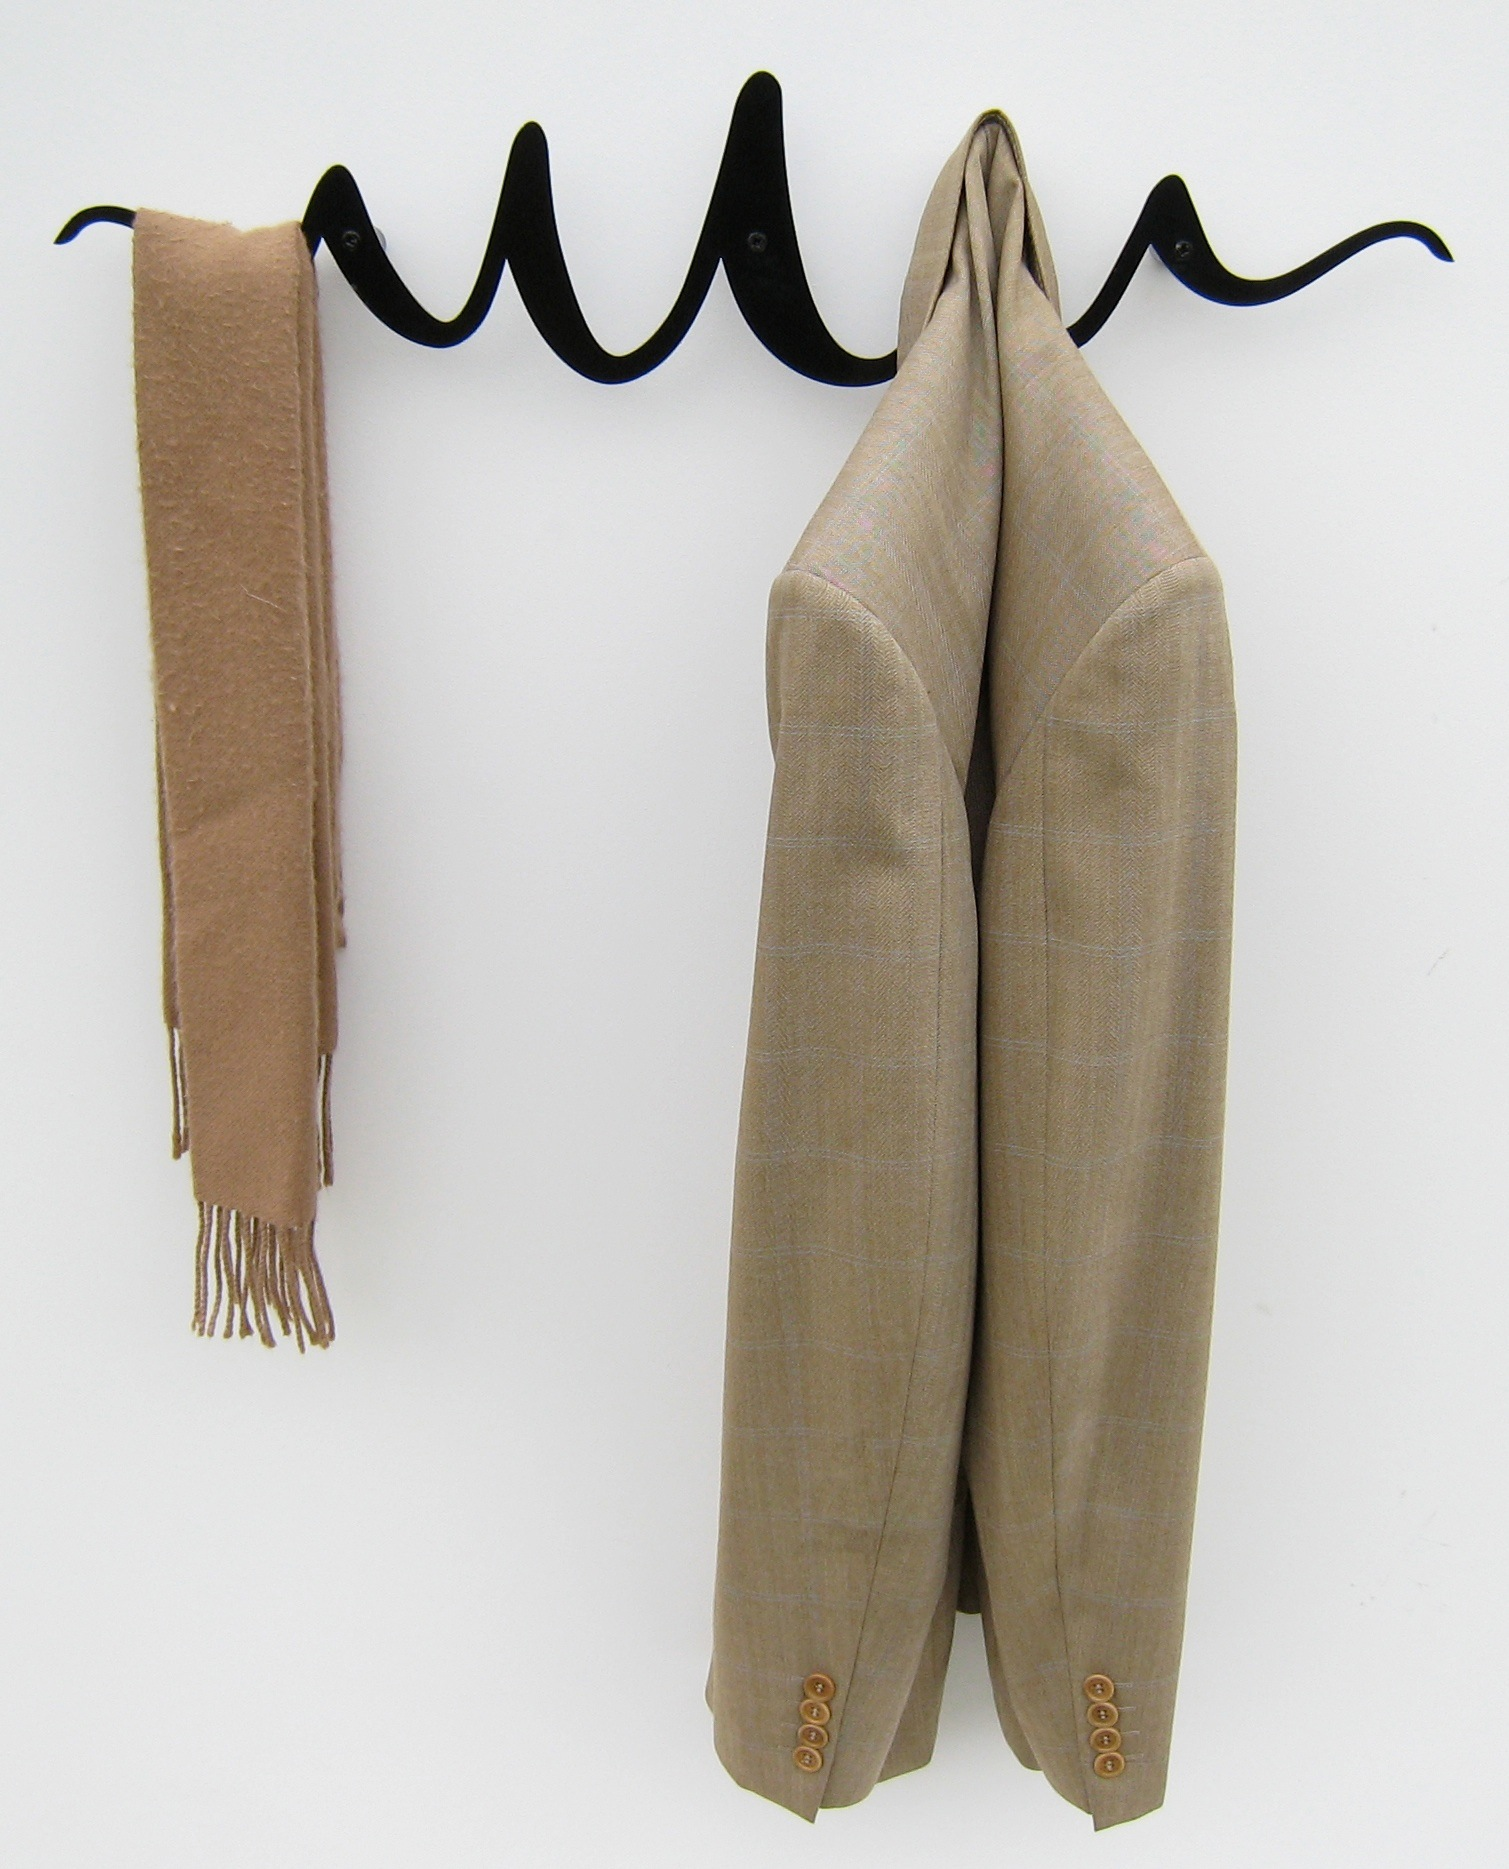 Hanger For Coats Coat Rack And Roll A Dose Of Simple